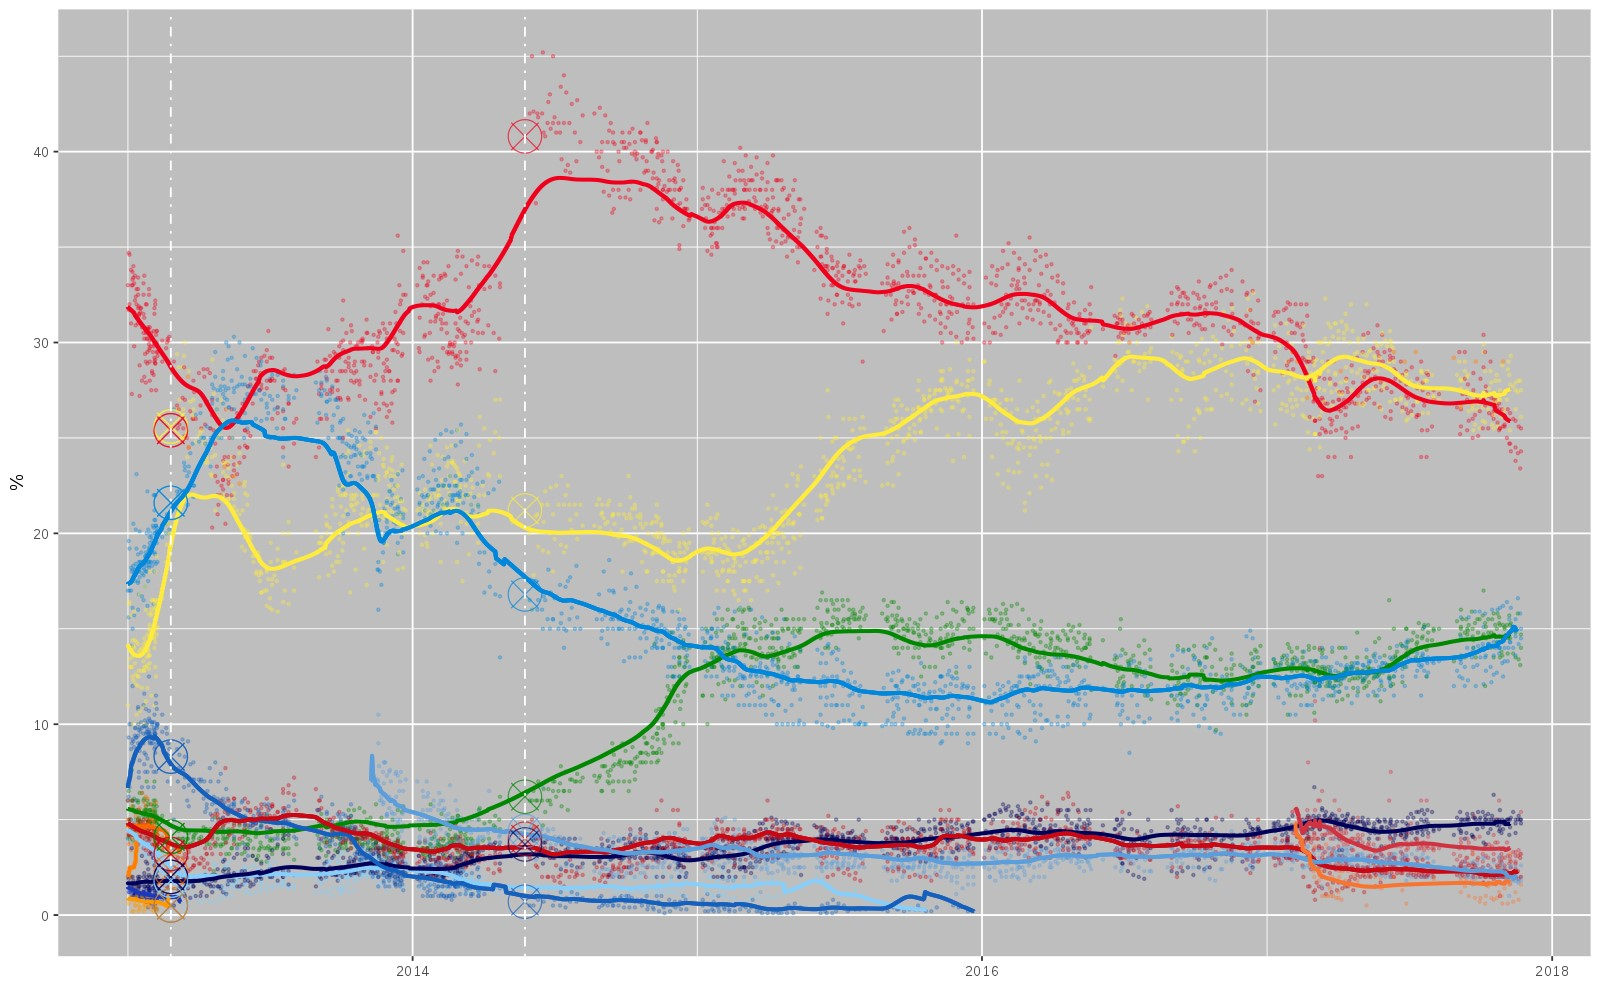 Latest Polls Have The 5 Star Movement In First Place, But Far From A Majority